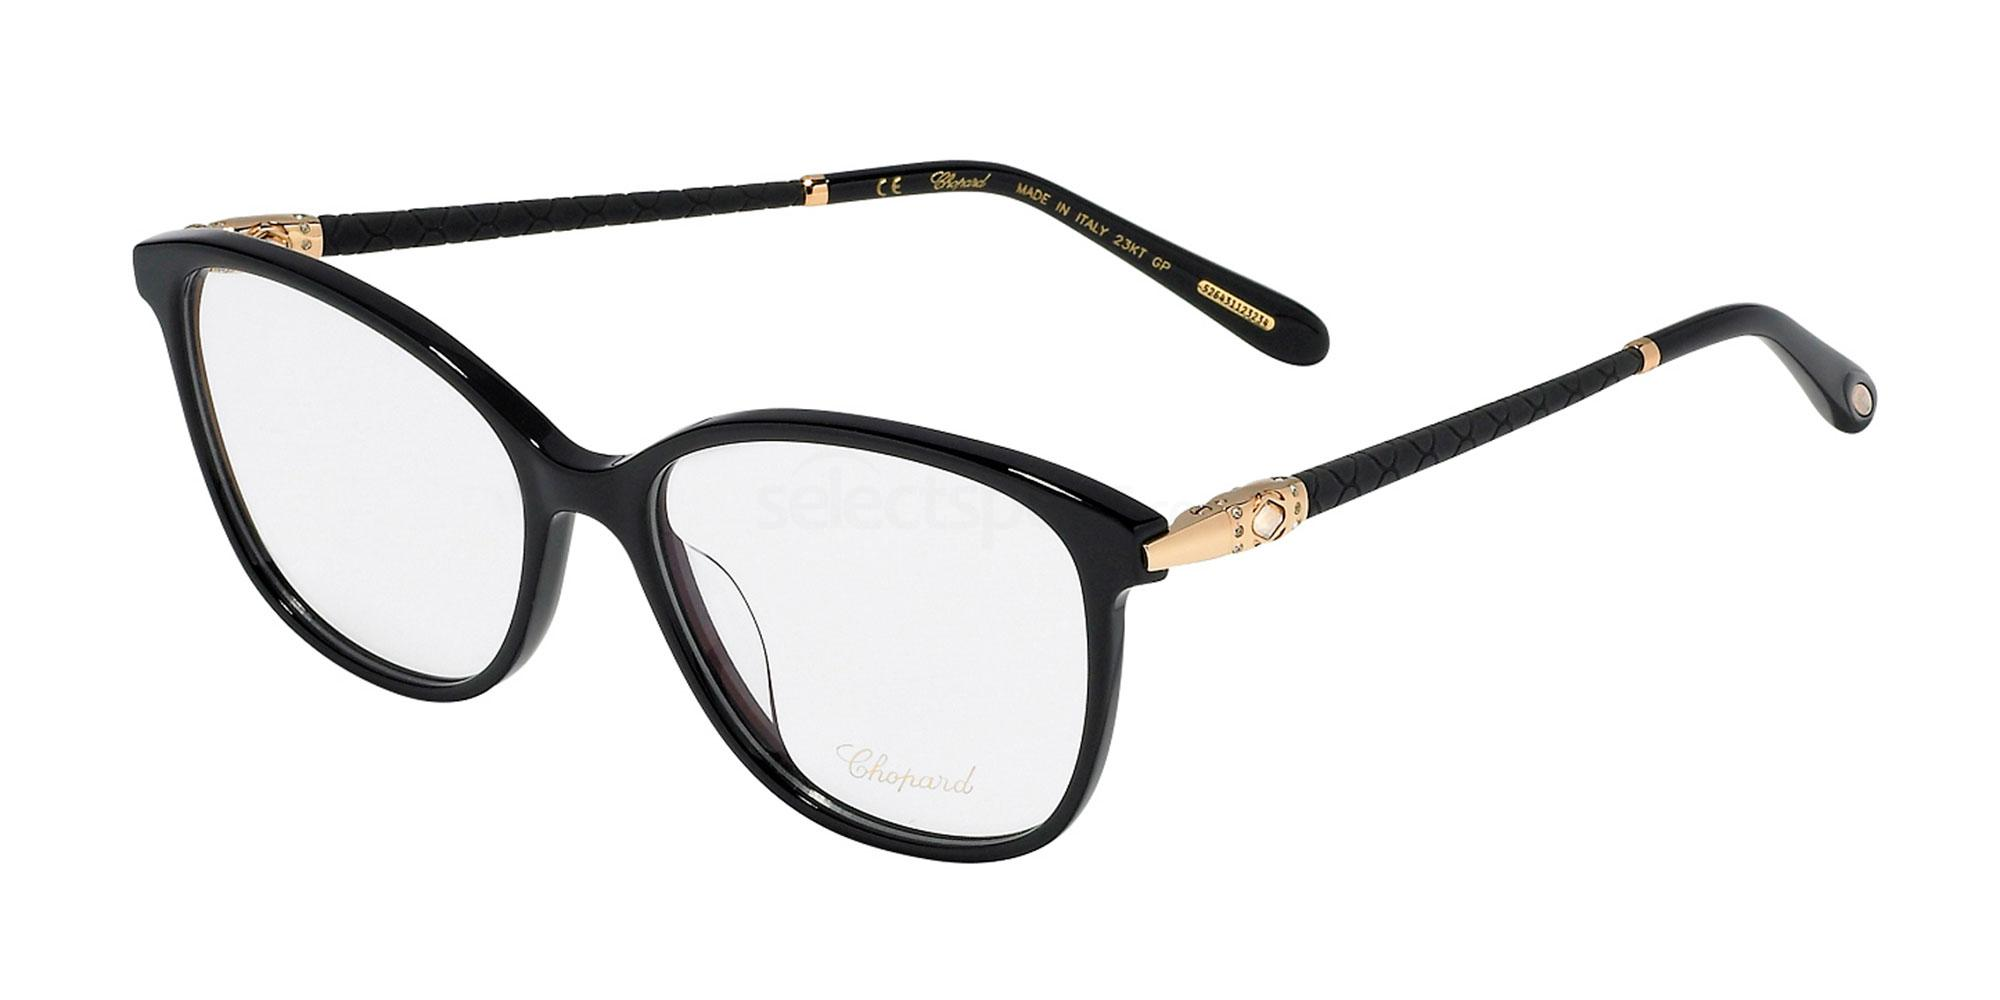 0700 VCH255S Glasses, Chopard